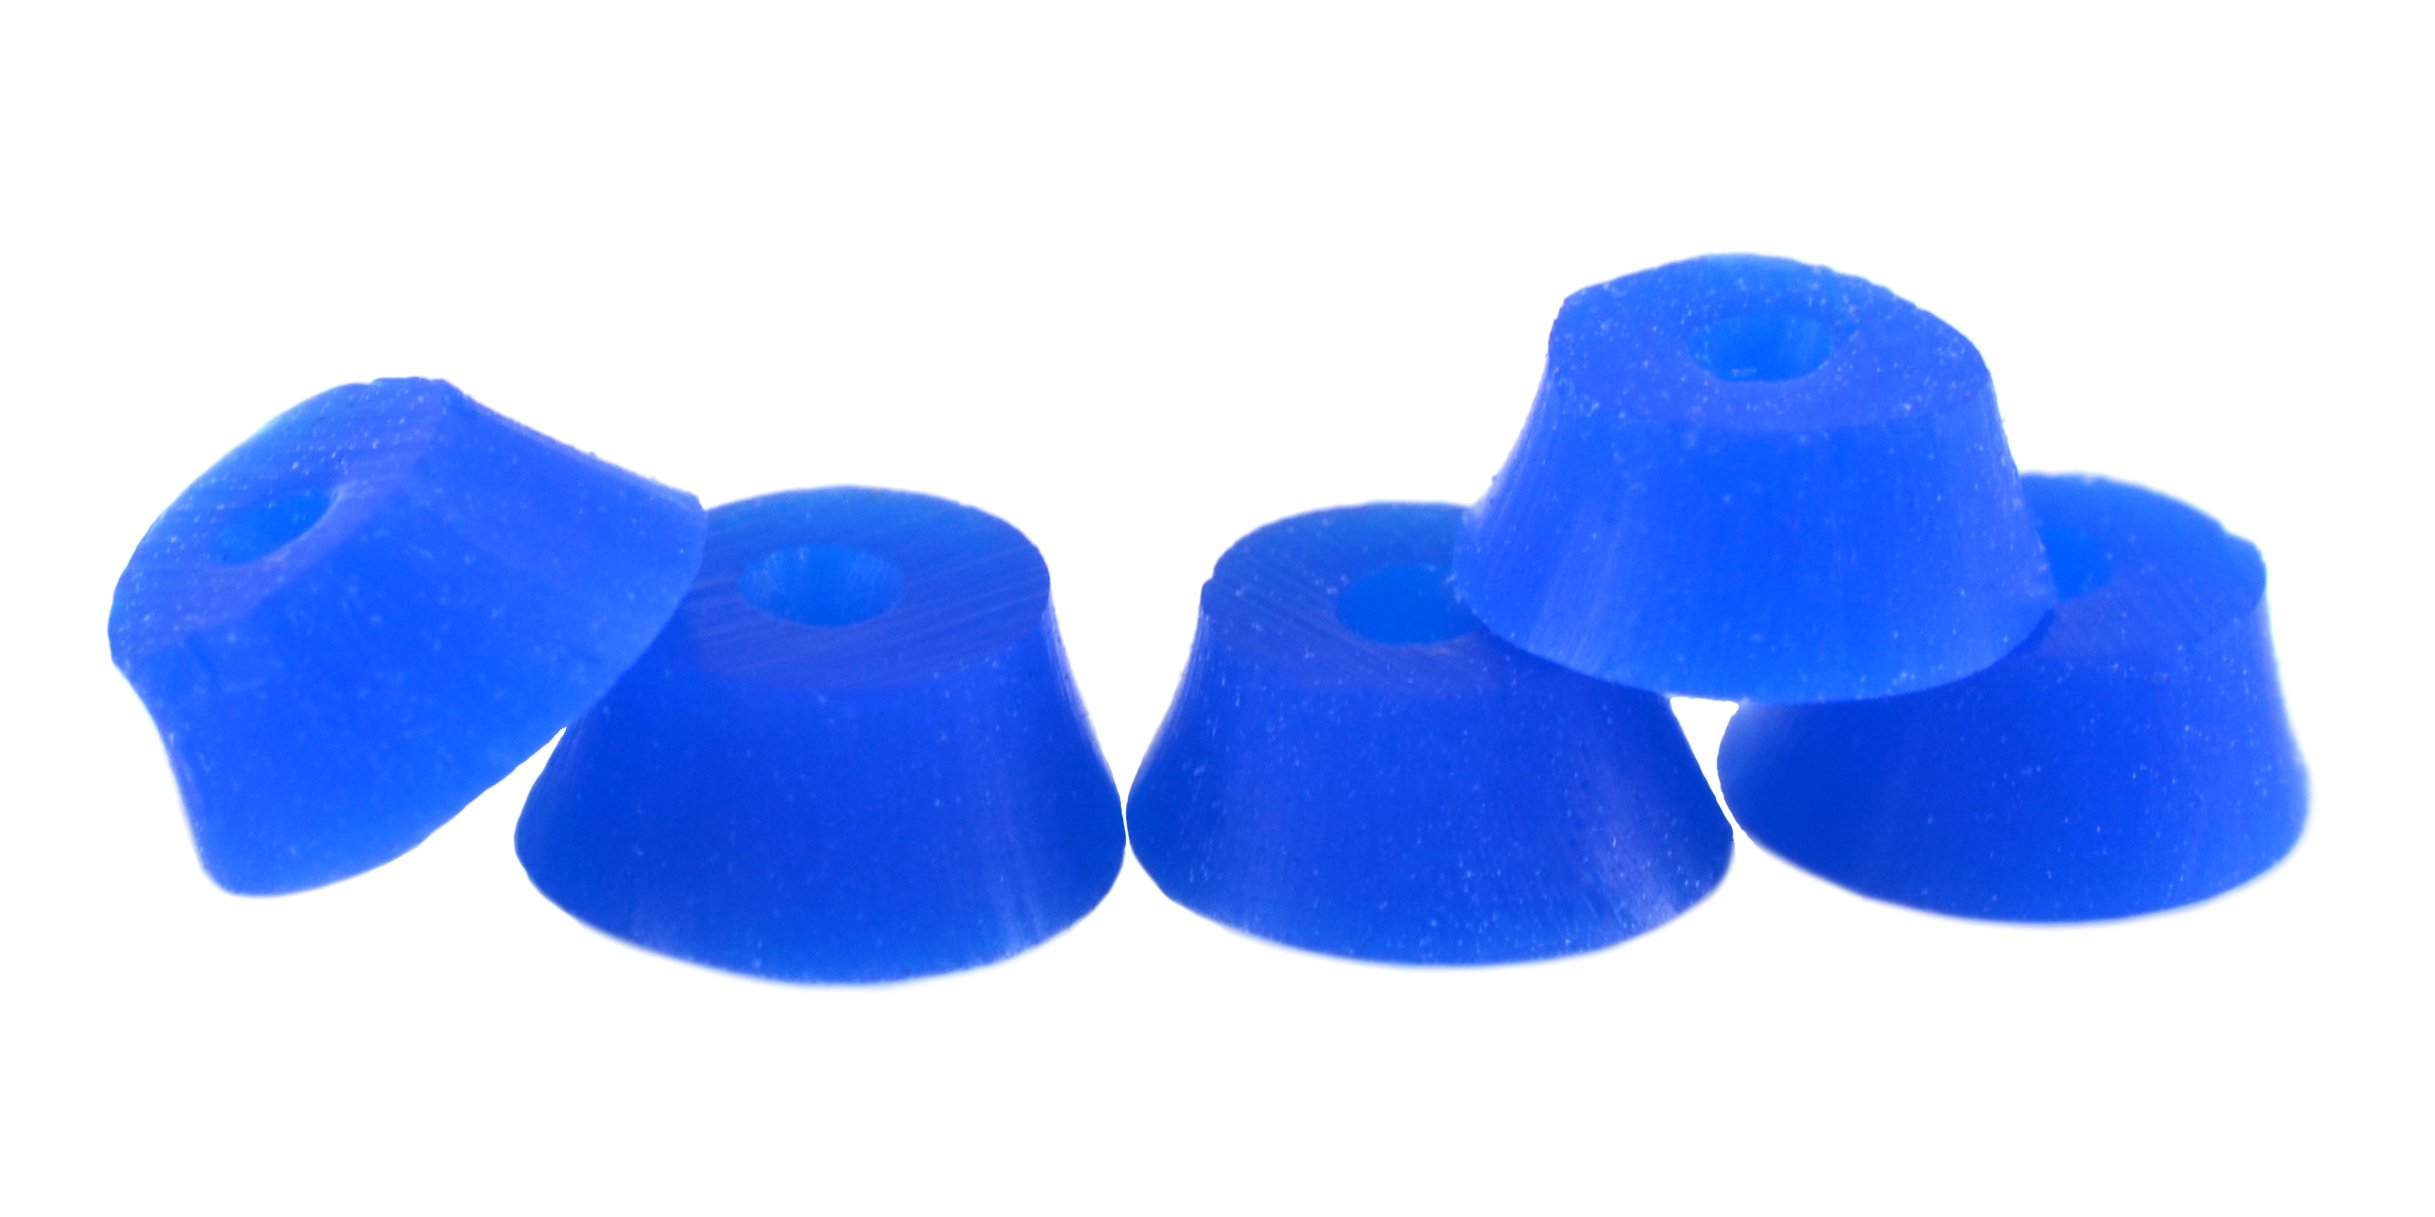 Teak Tuning Bubble Bushings, Professional Shaped Fingerboard Tuning, Dark Blue, Pack of 5